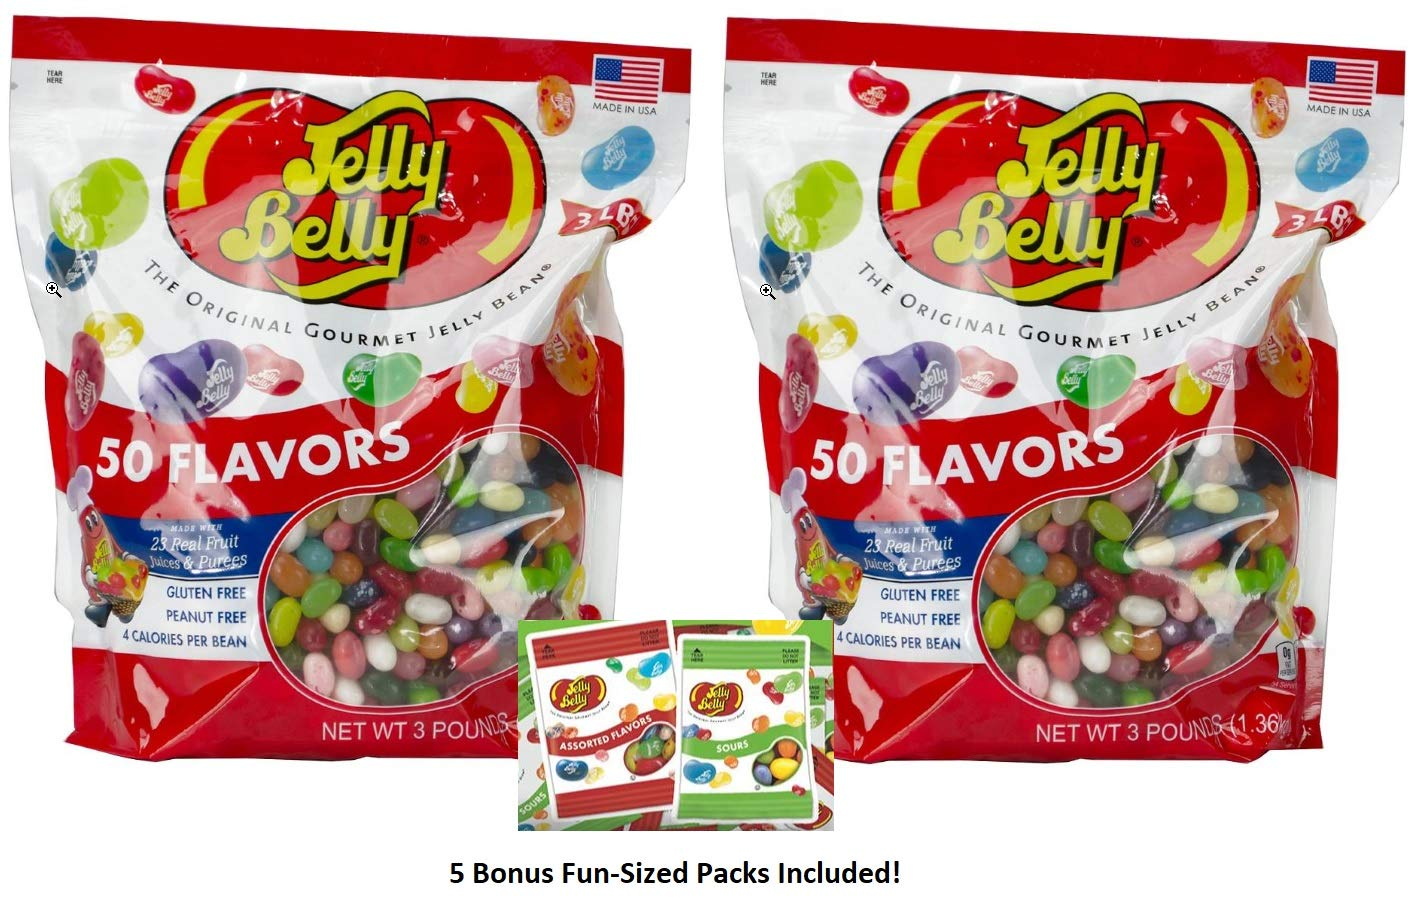 Jelly Belly Jelly Beans 50 Flavors 6 Pounds, Includes Five Bonus Fun-Sized Packs by Jelly Belly